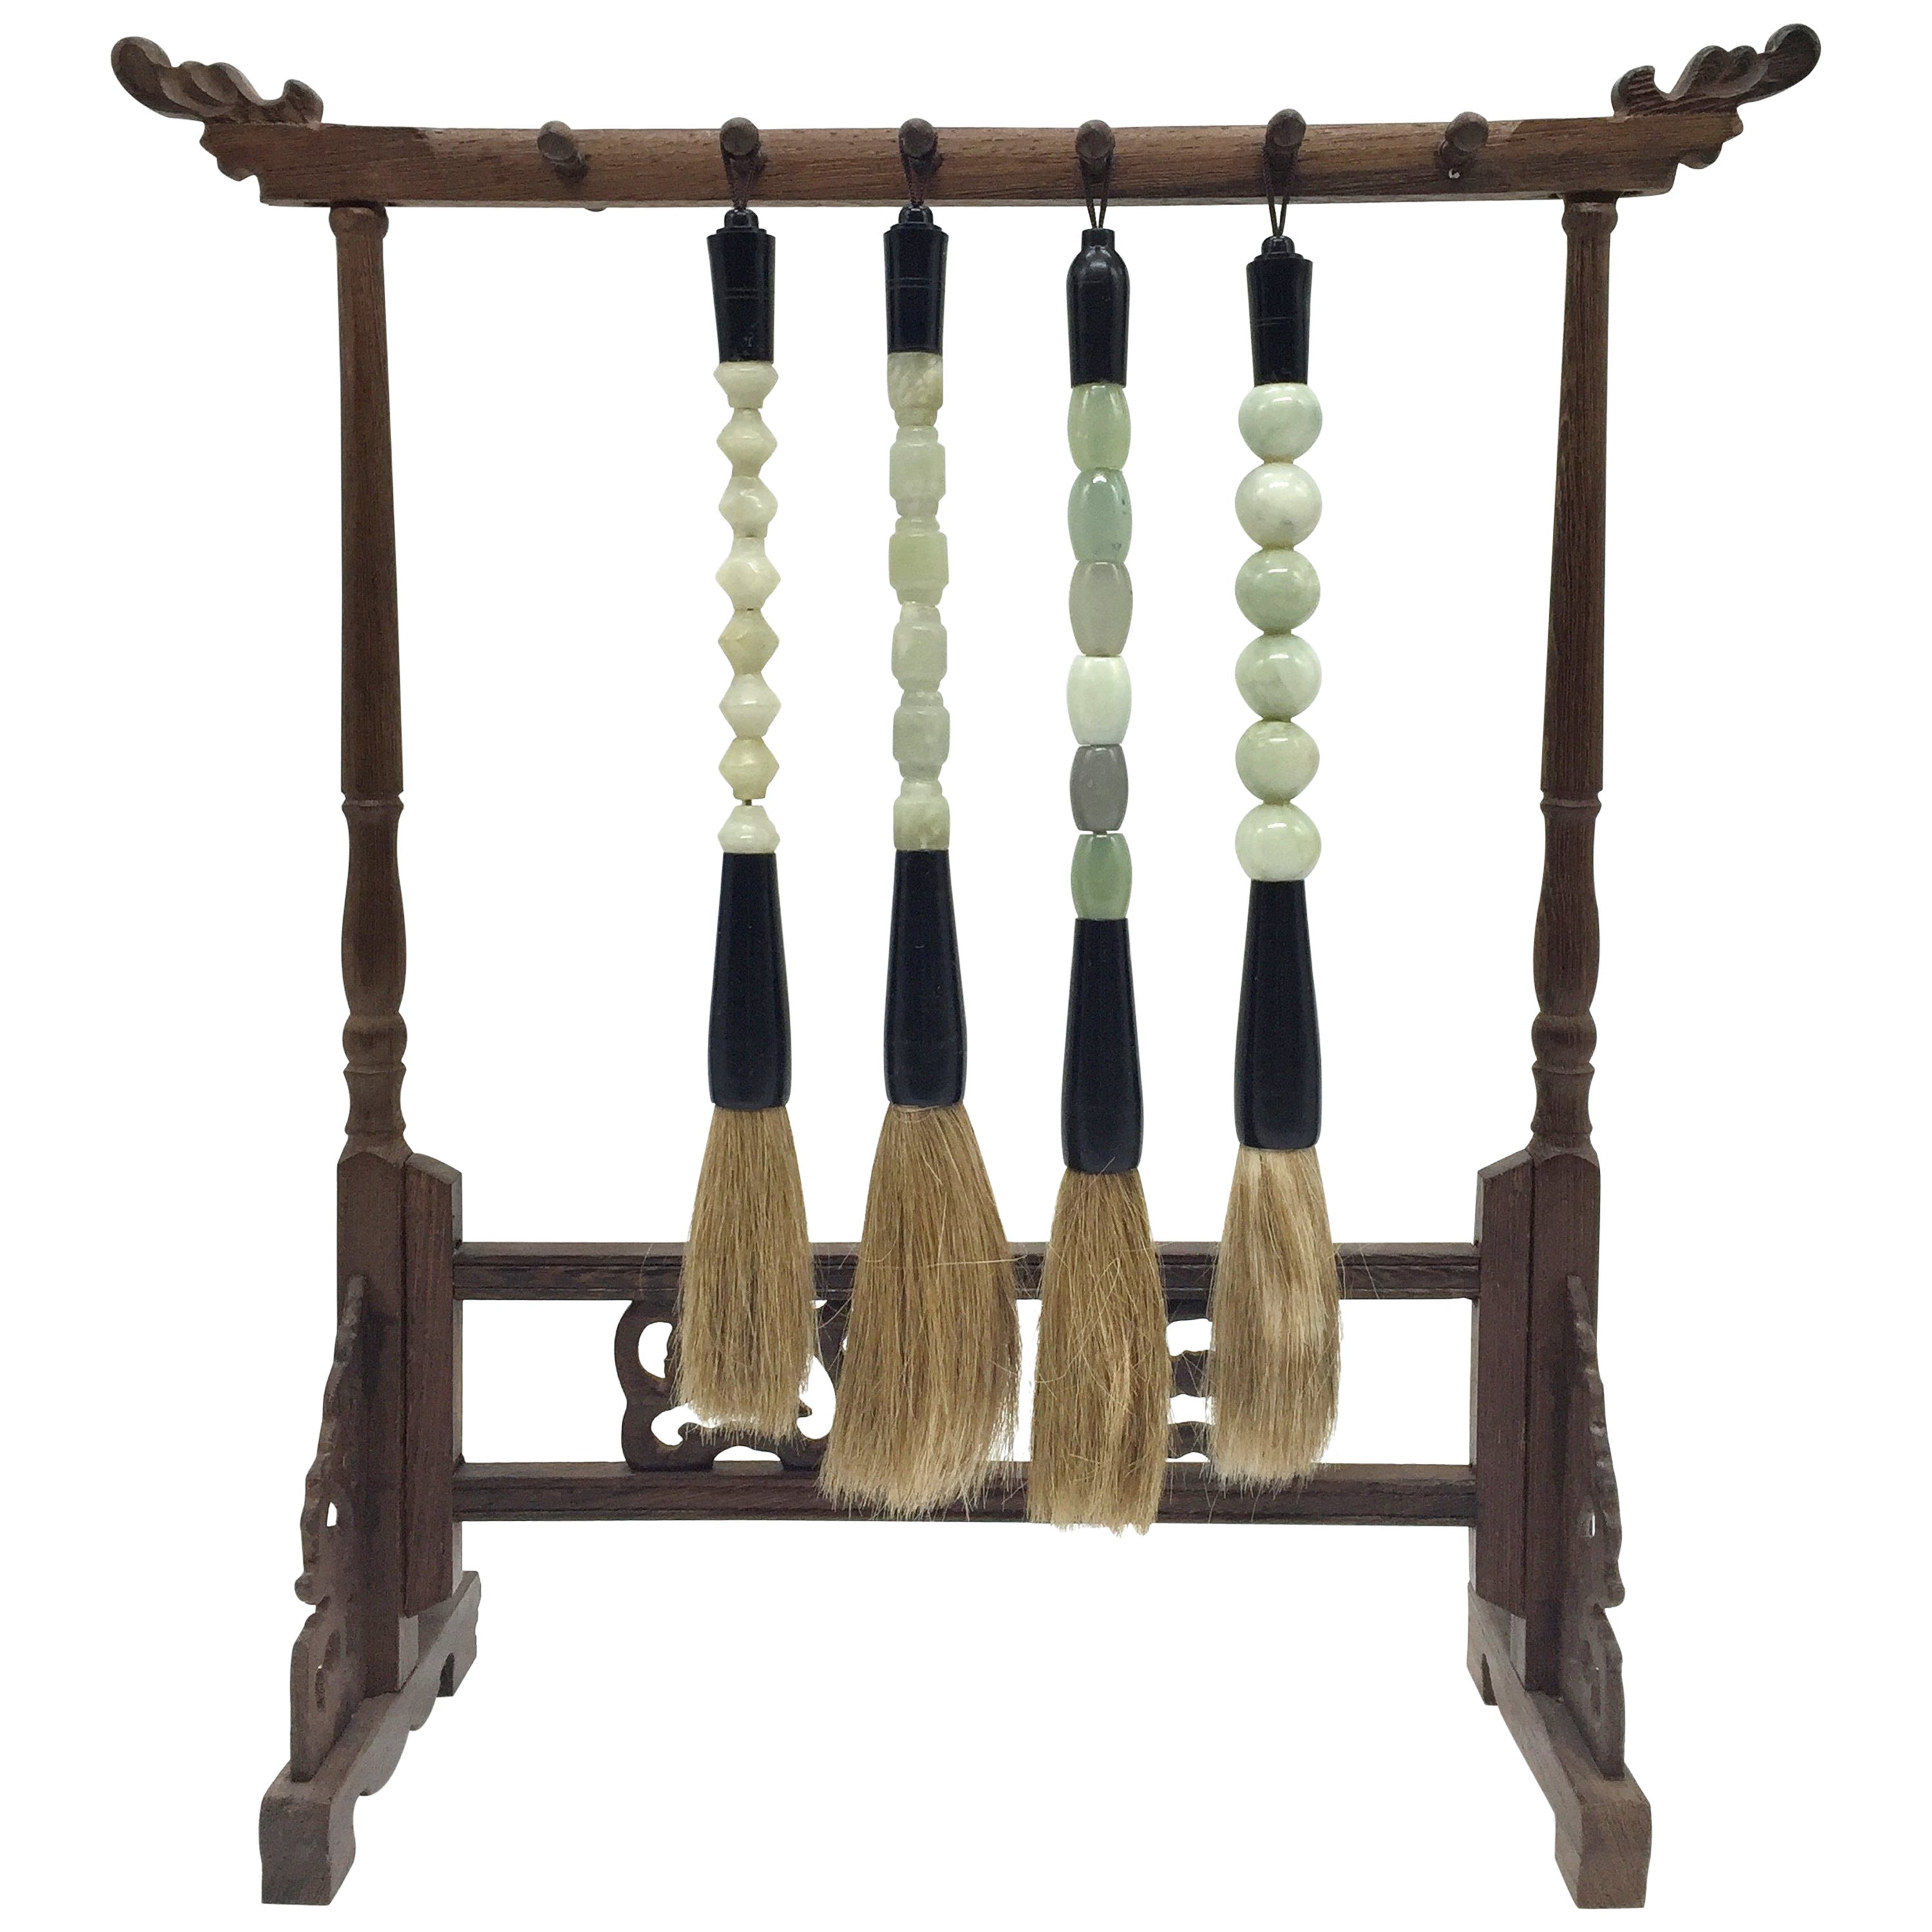 Chinese brush and stand set of five jade and rosewood for sale at 1stdibs